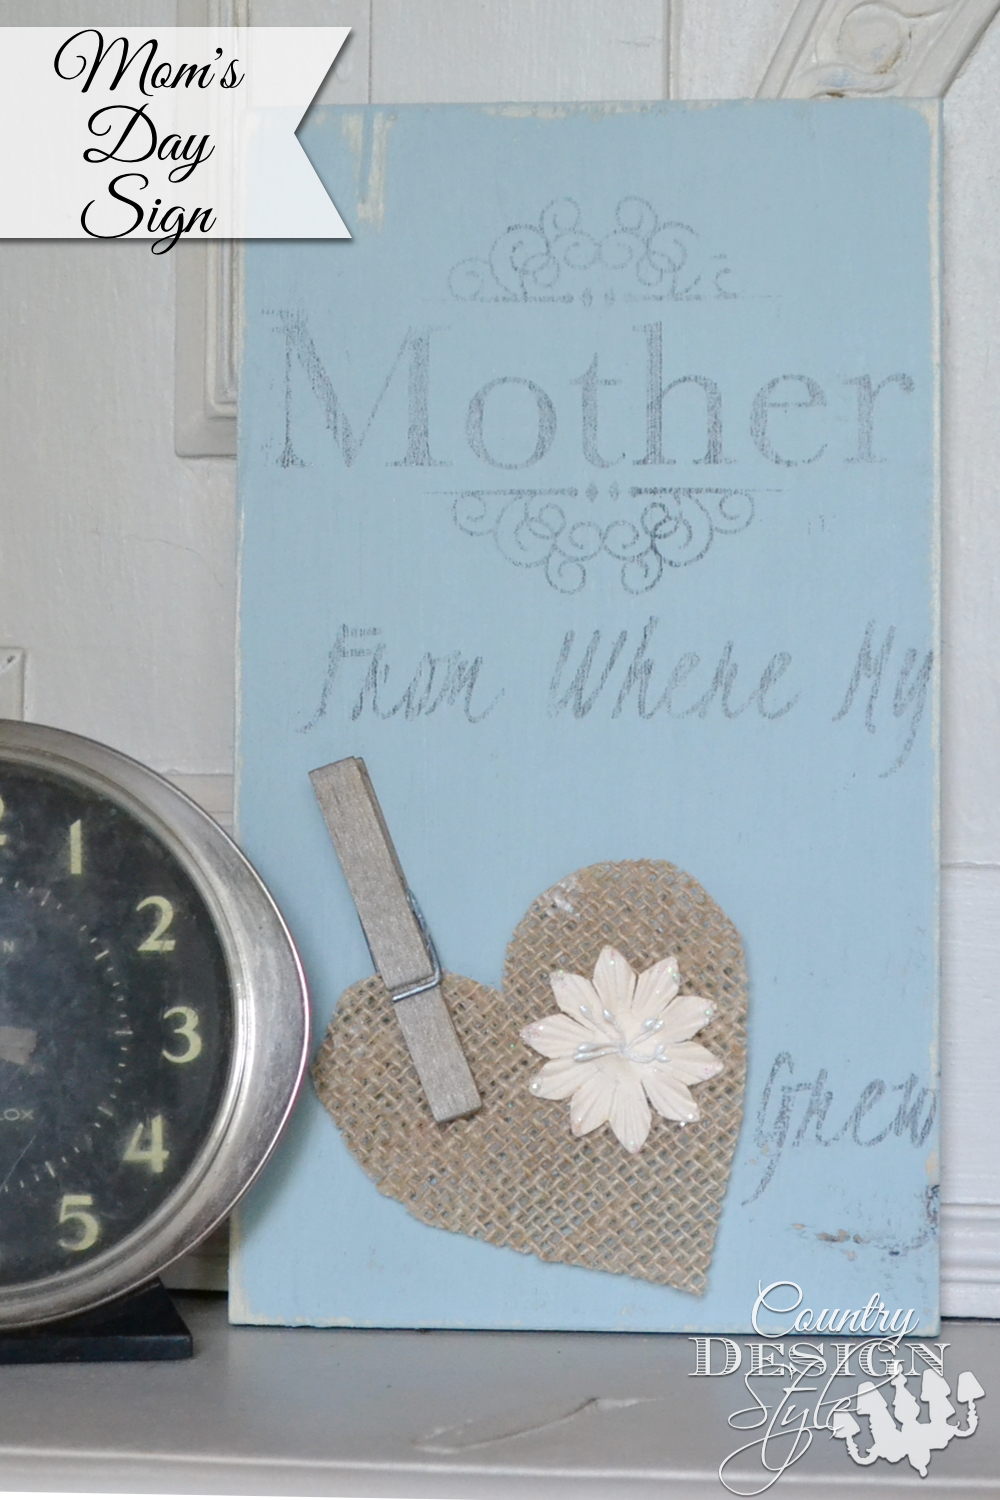 How to video for making a sign for mom with video.  Country Design Style